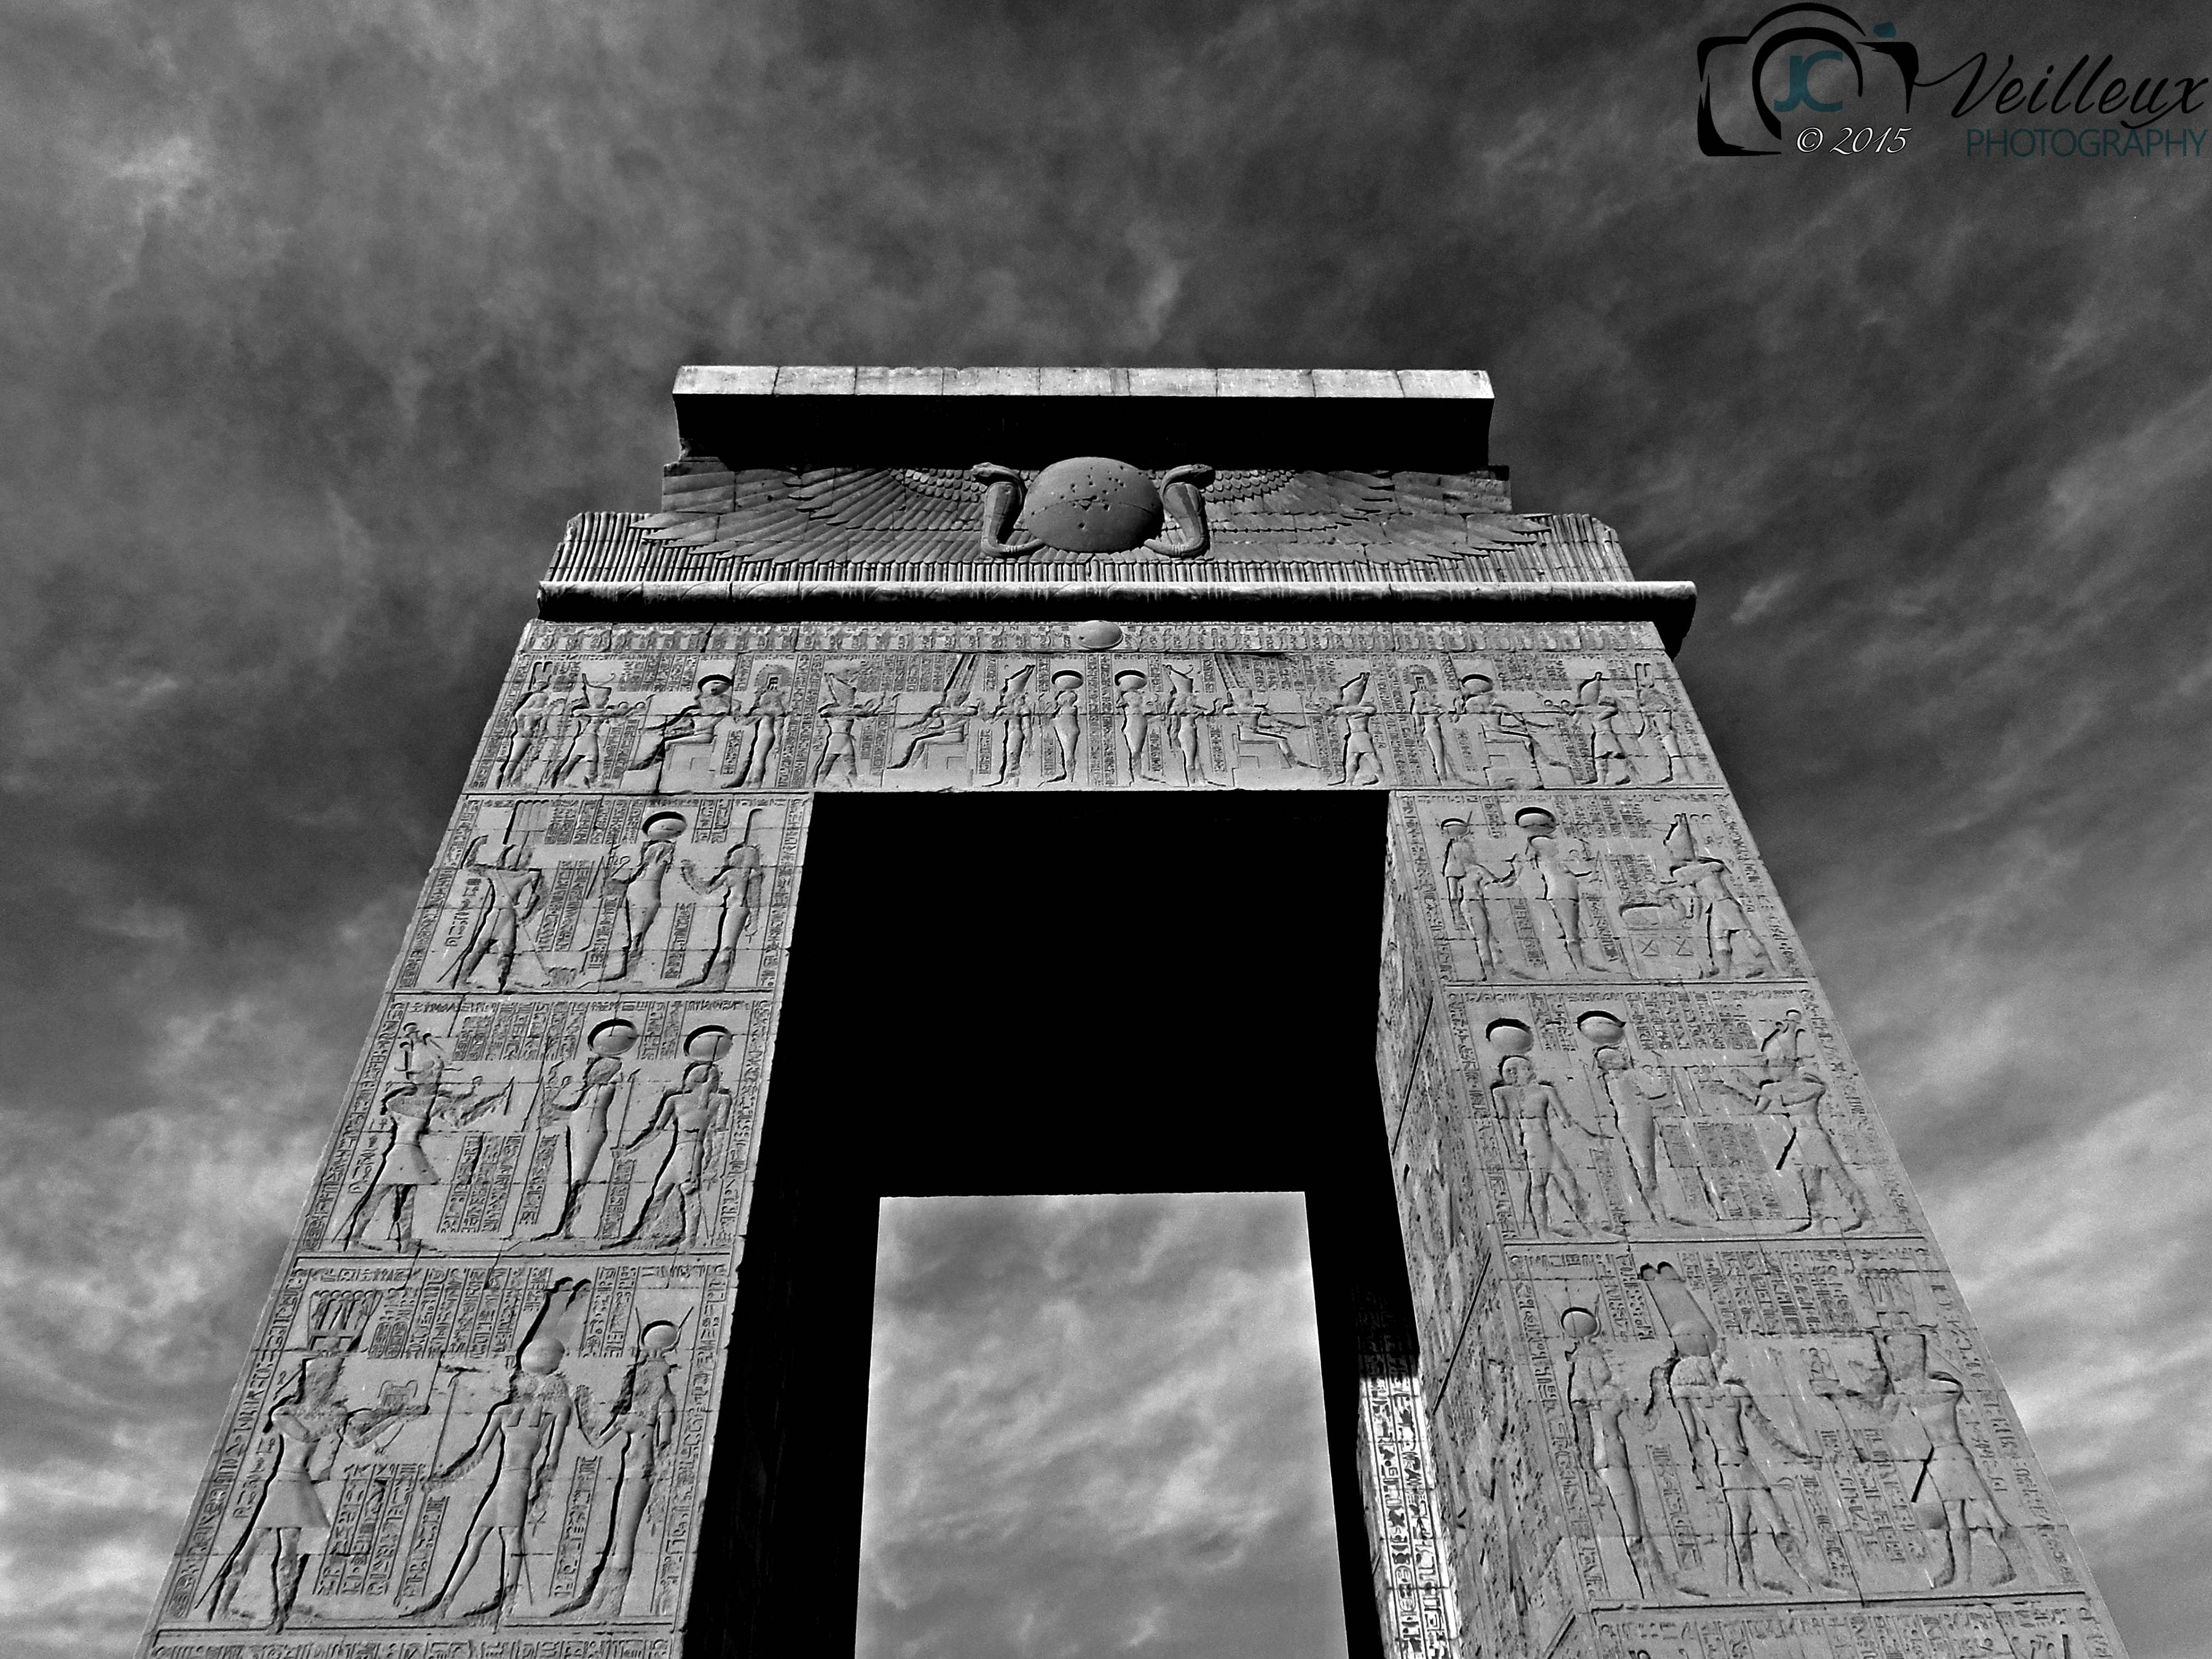 Gate of Ptolemy III No. 1